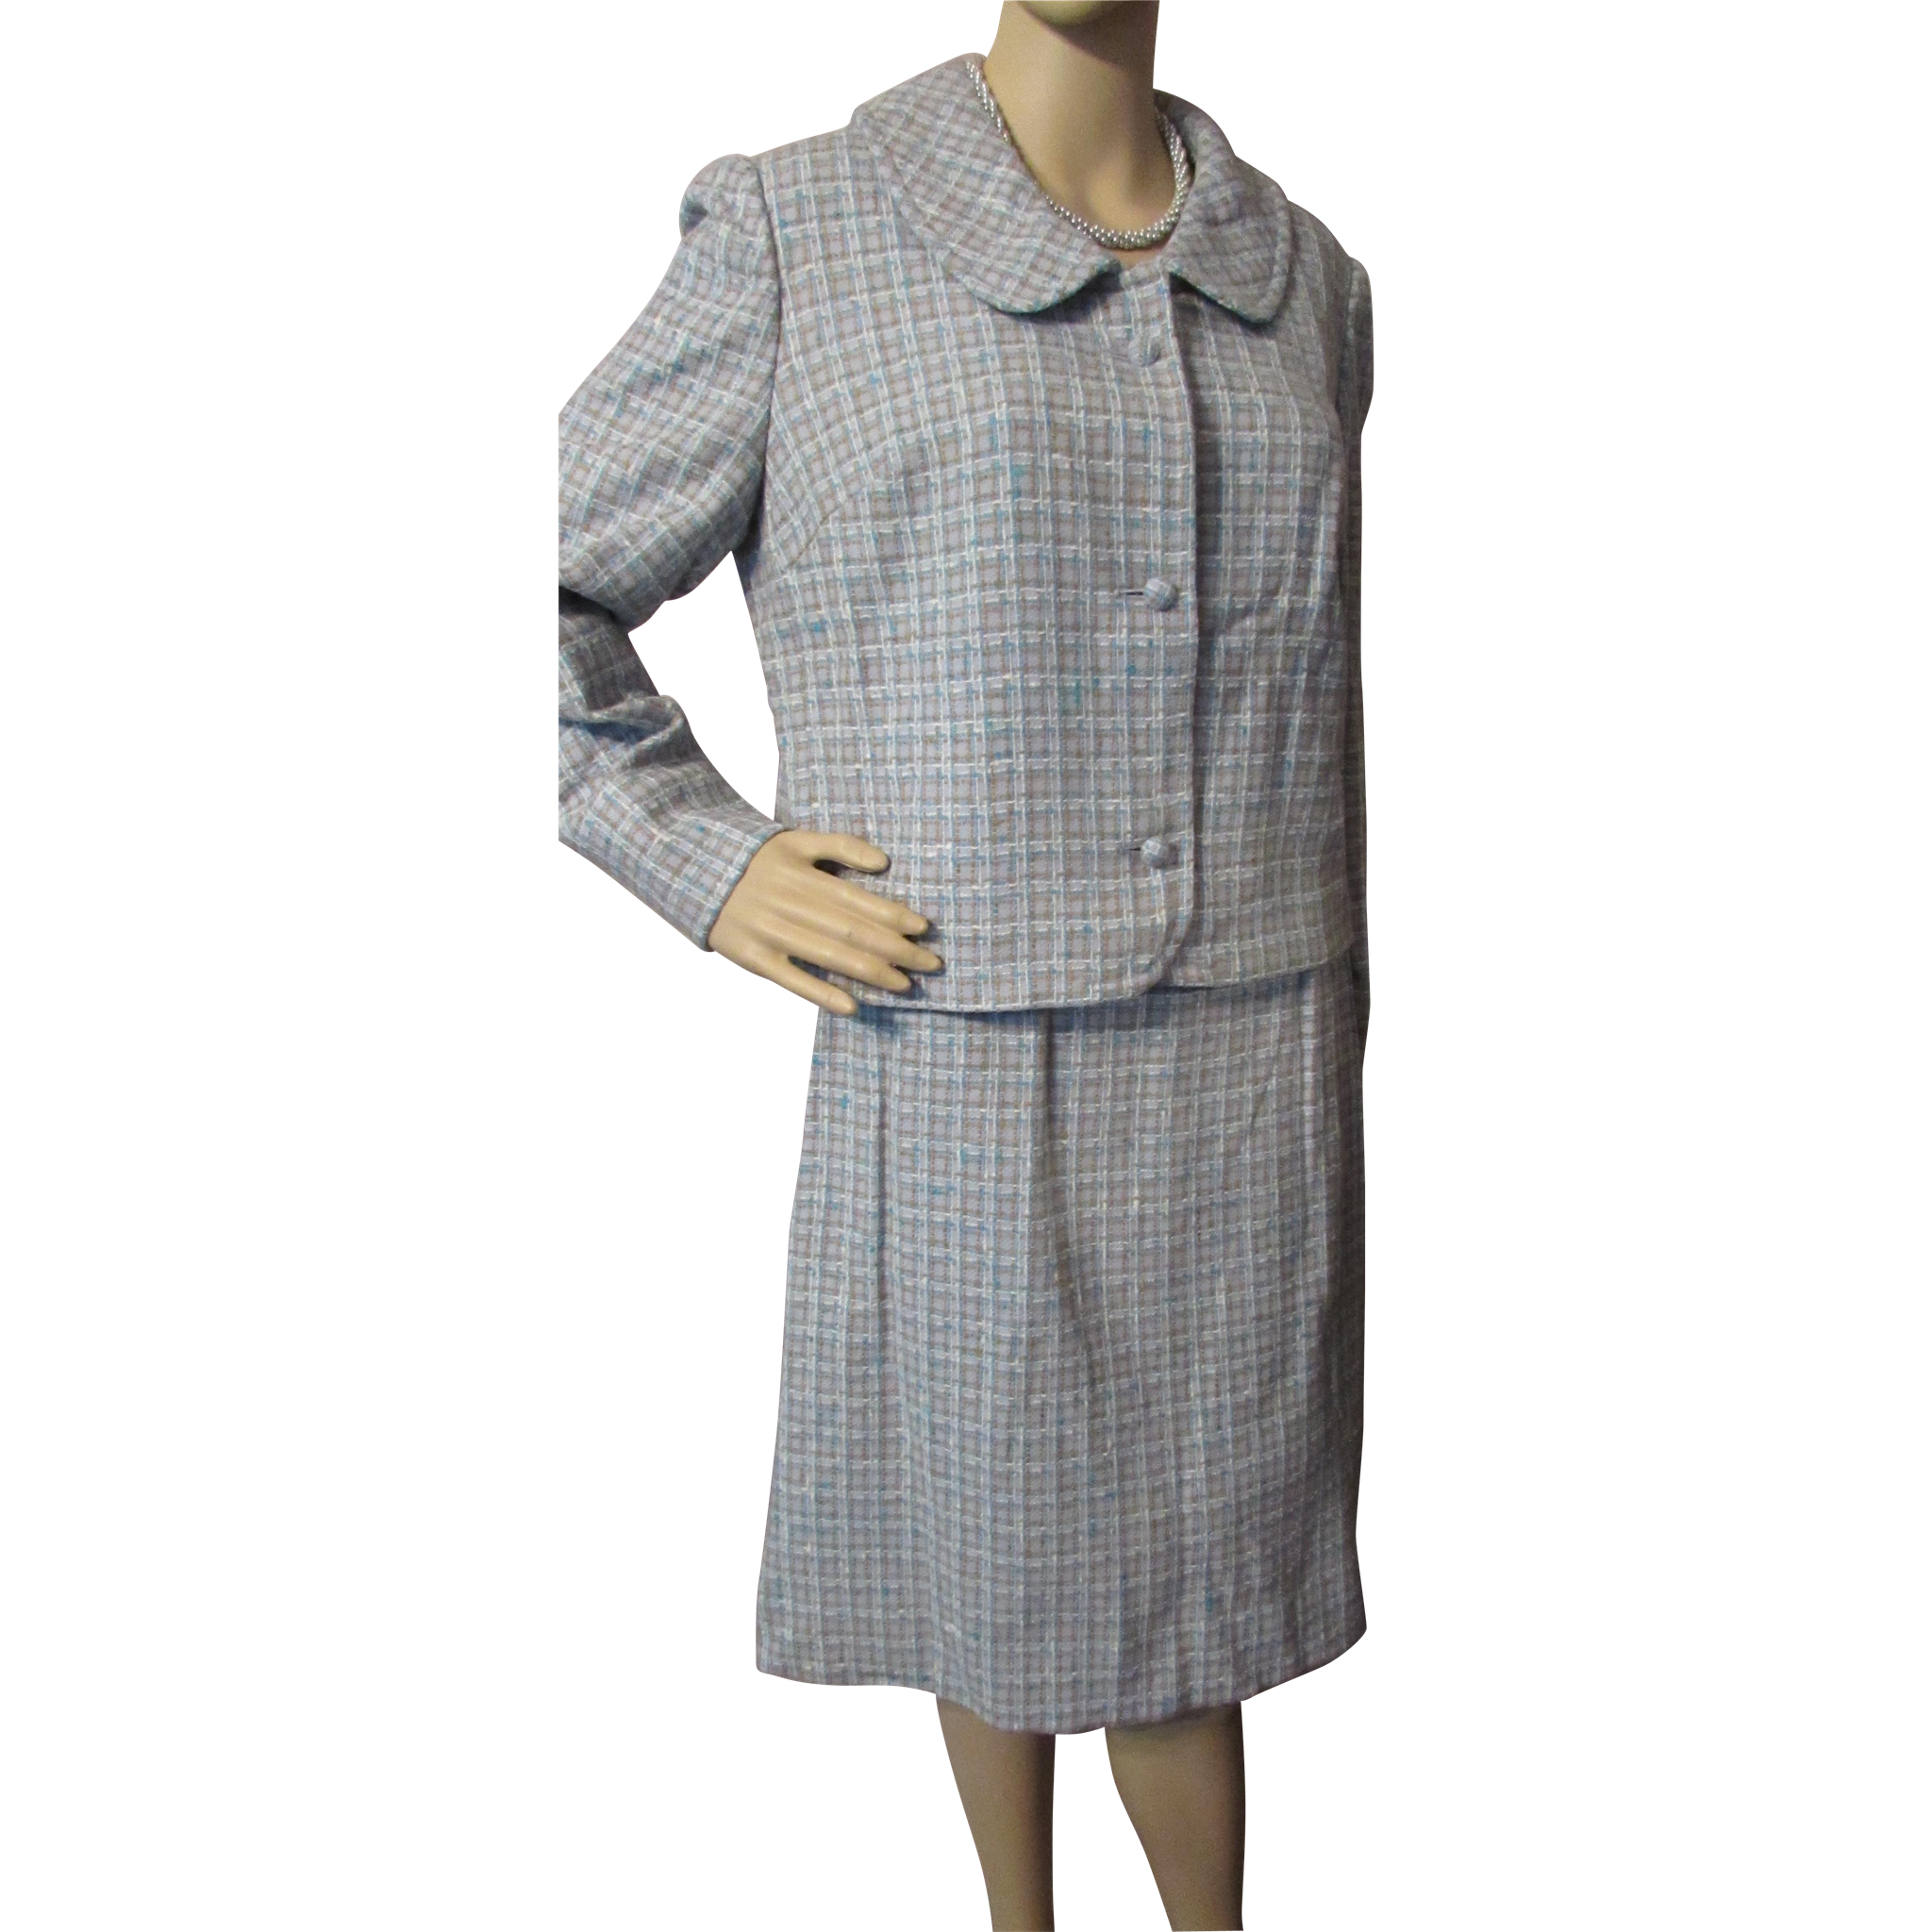 Classic Pendleton Suit Skirt and Jacket in Blue and Brown Plaid Tweed